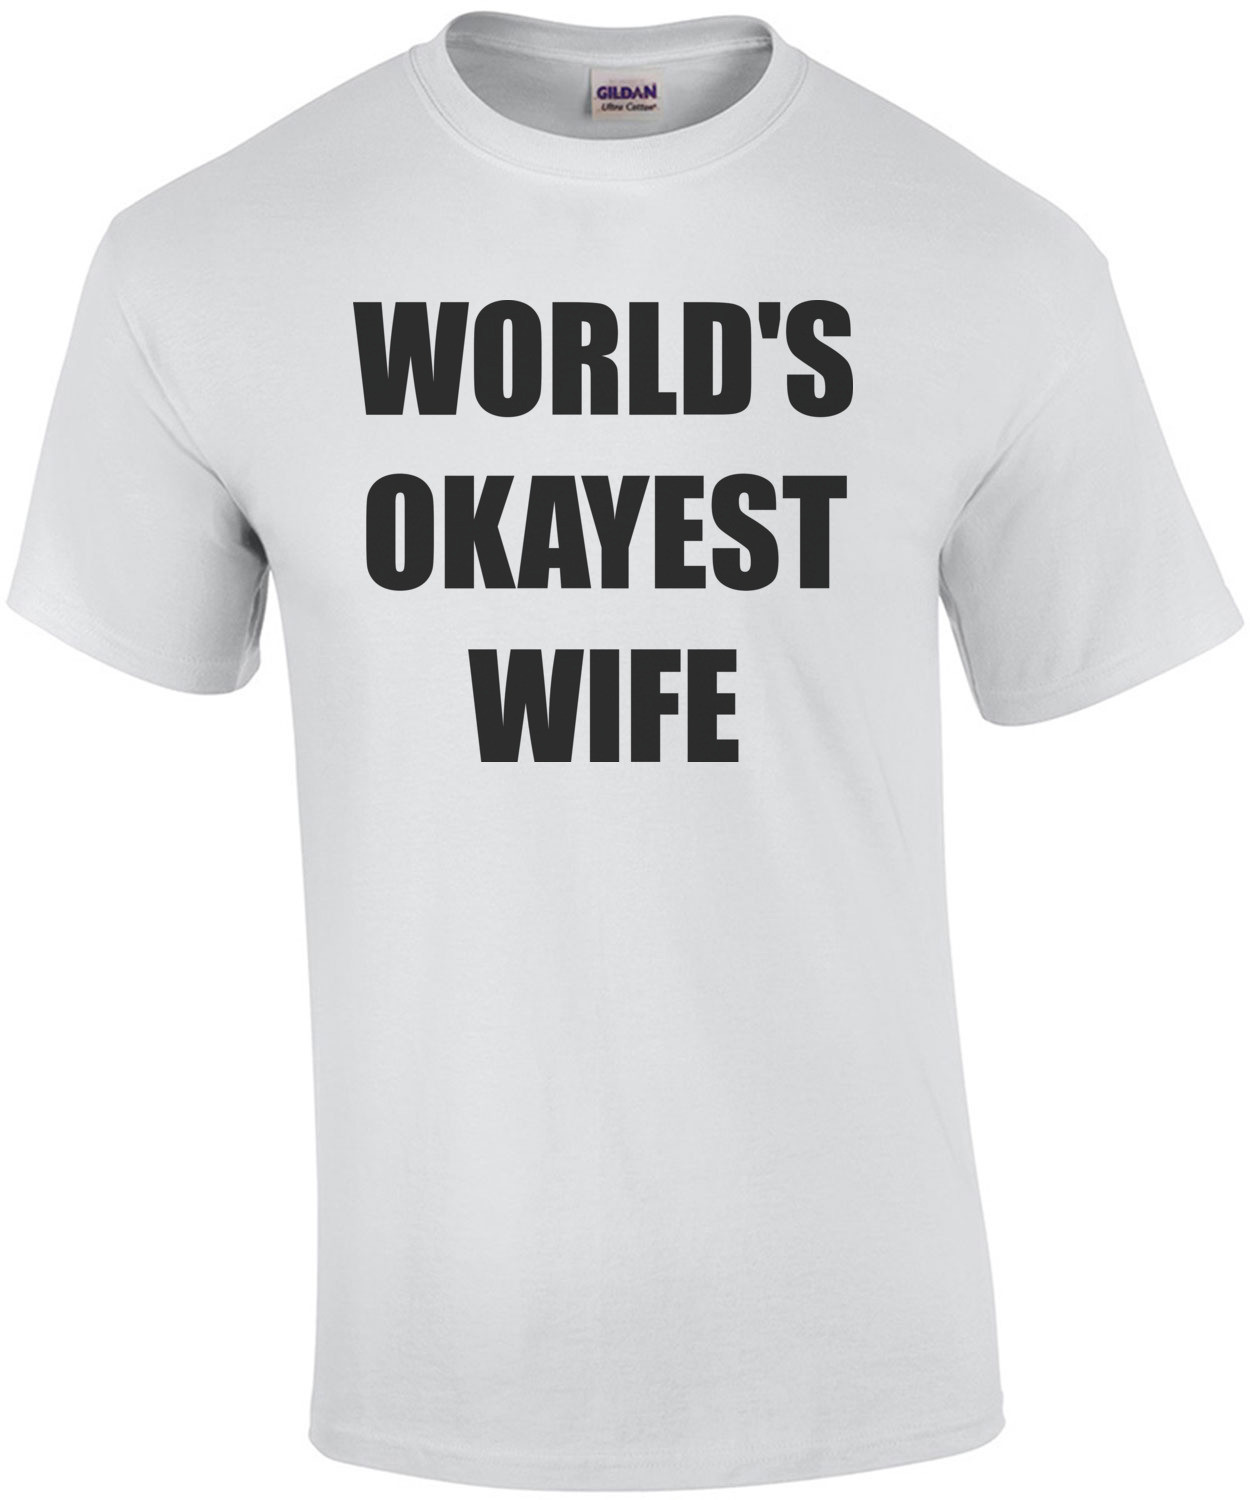 WORLD'S OKAYEST WIFE Shirt